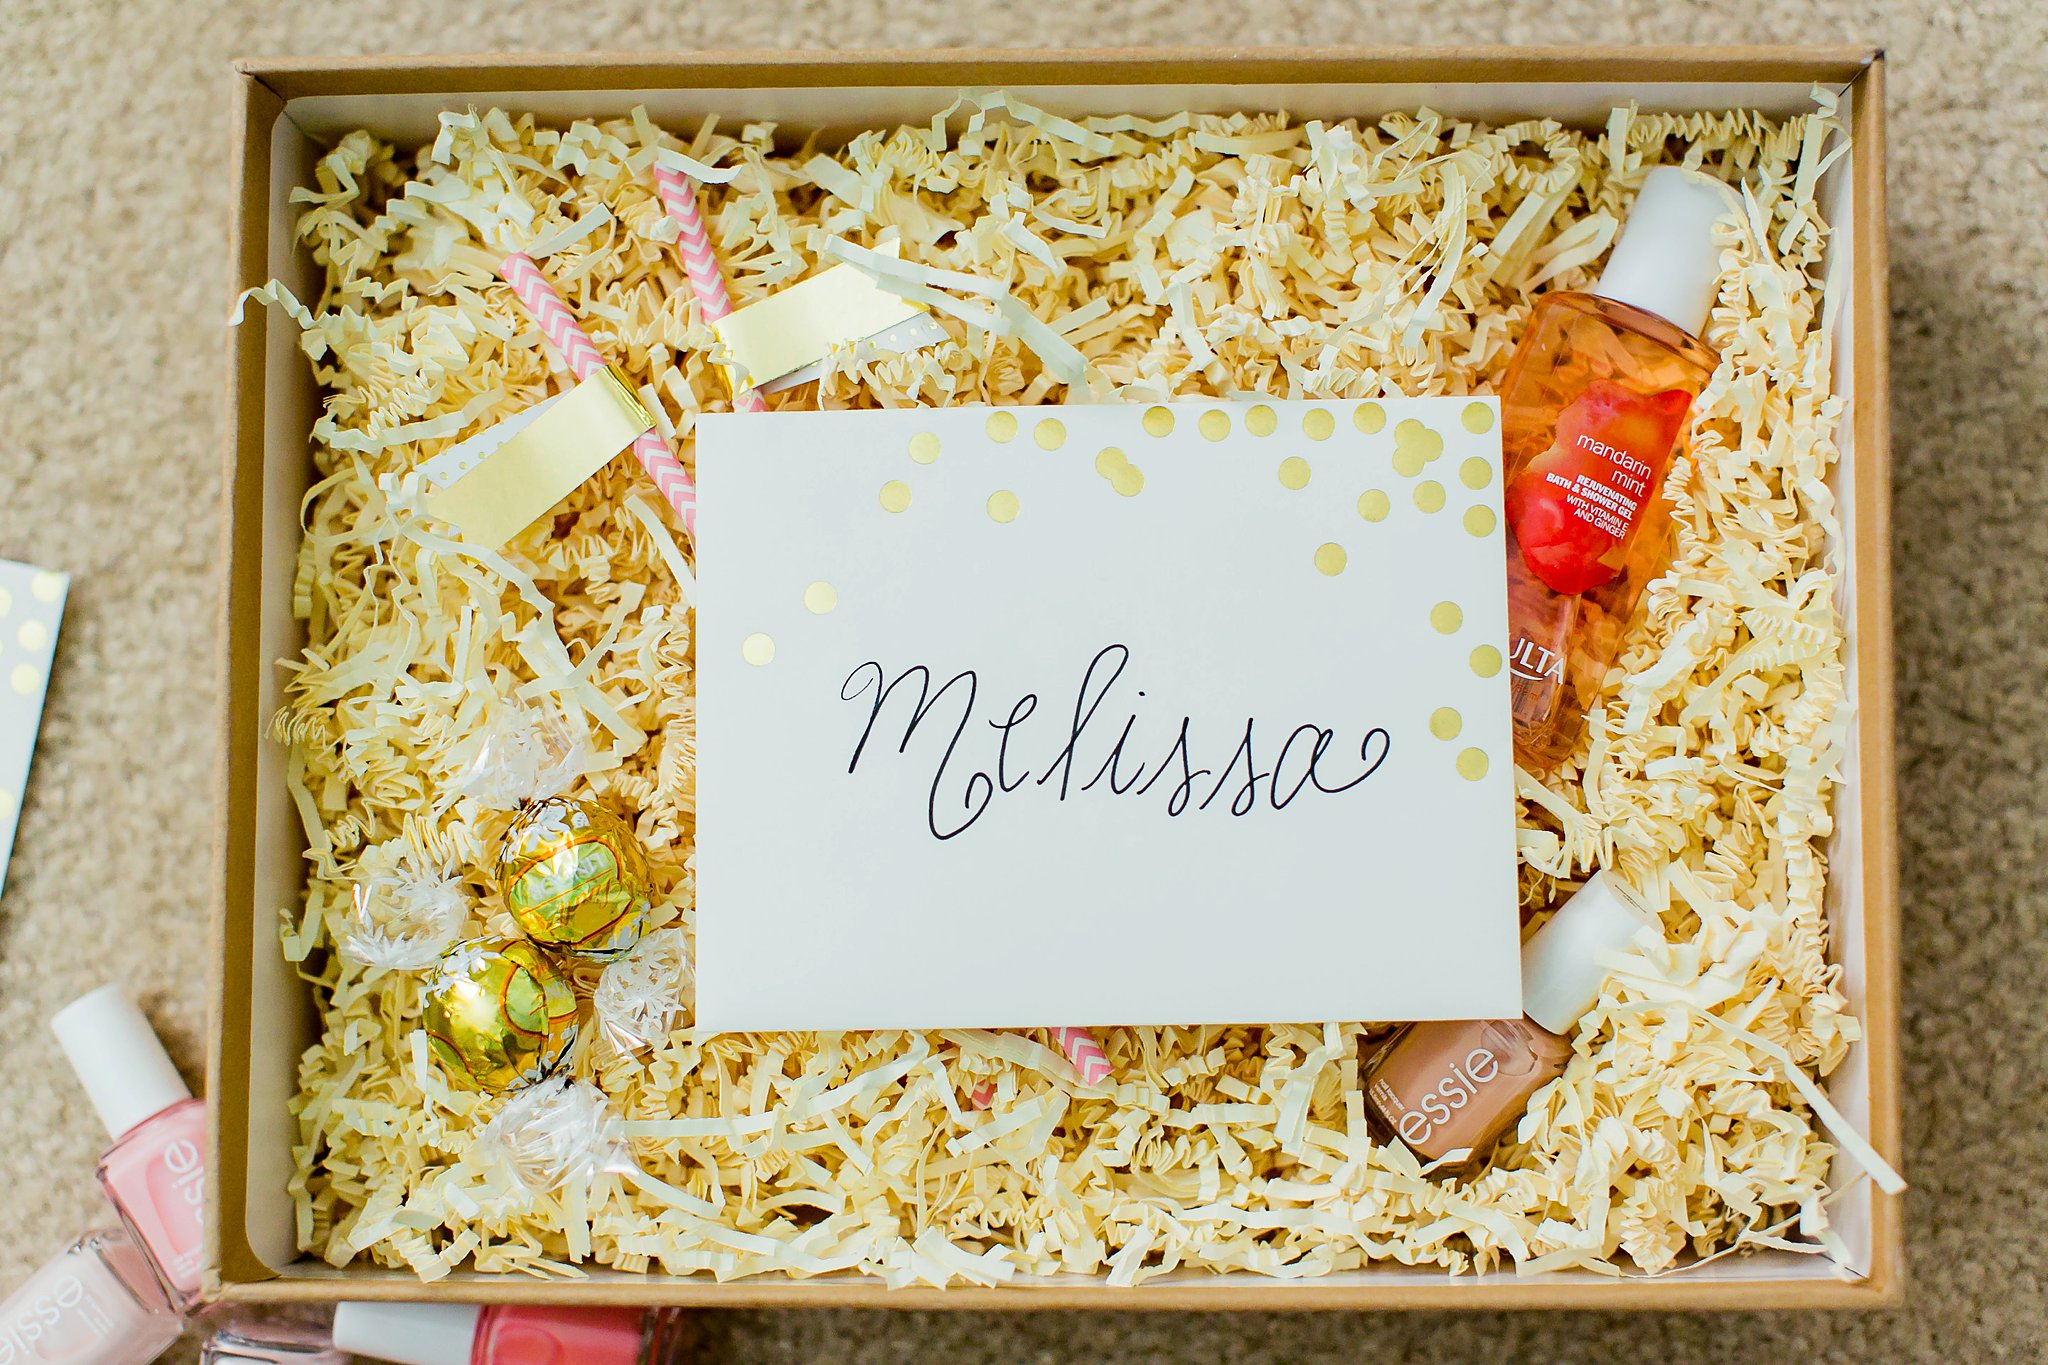 DIY Bridesmaid Proposal Will You Be My Bridesmaid Gift Wedding Planning-3087.jpg